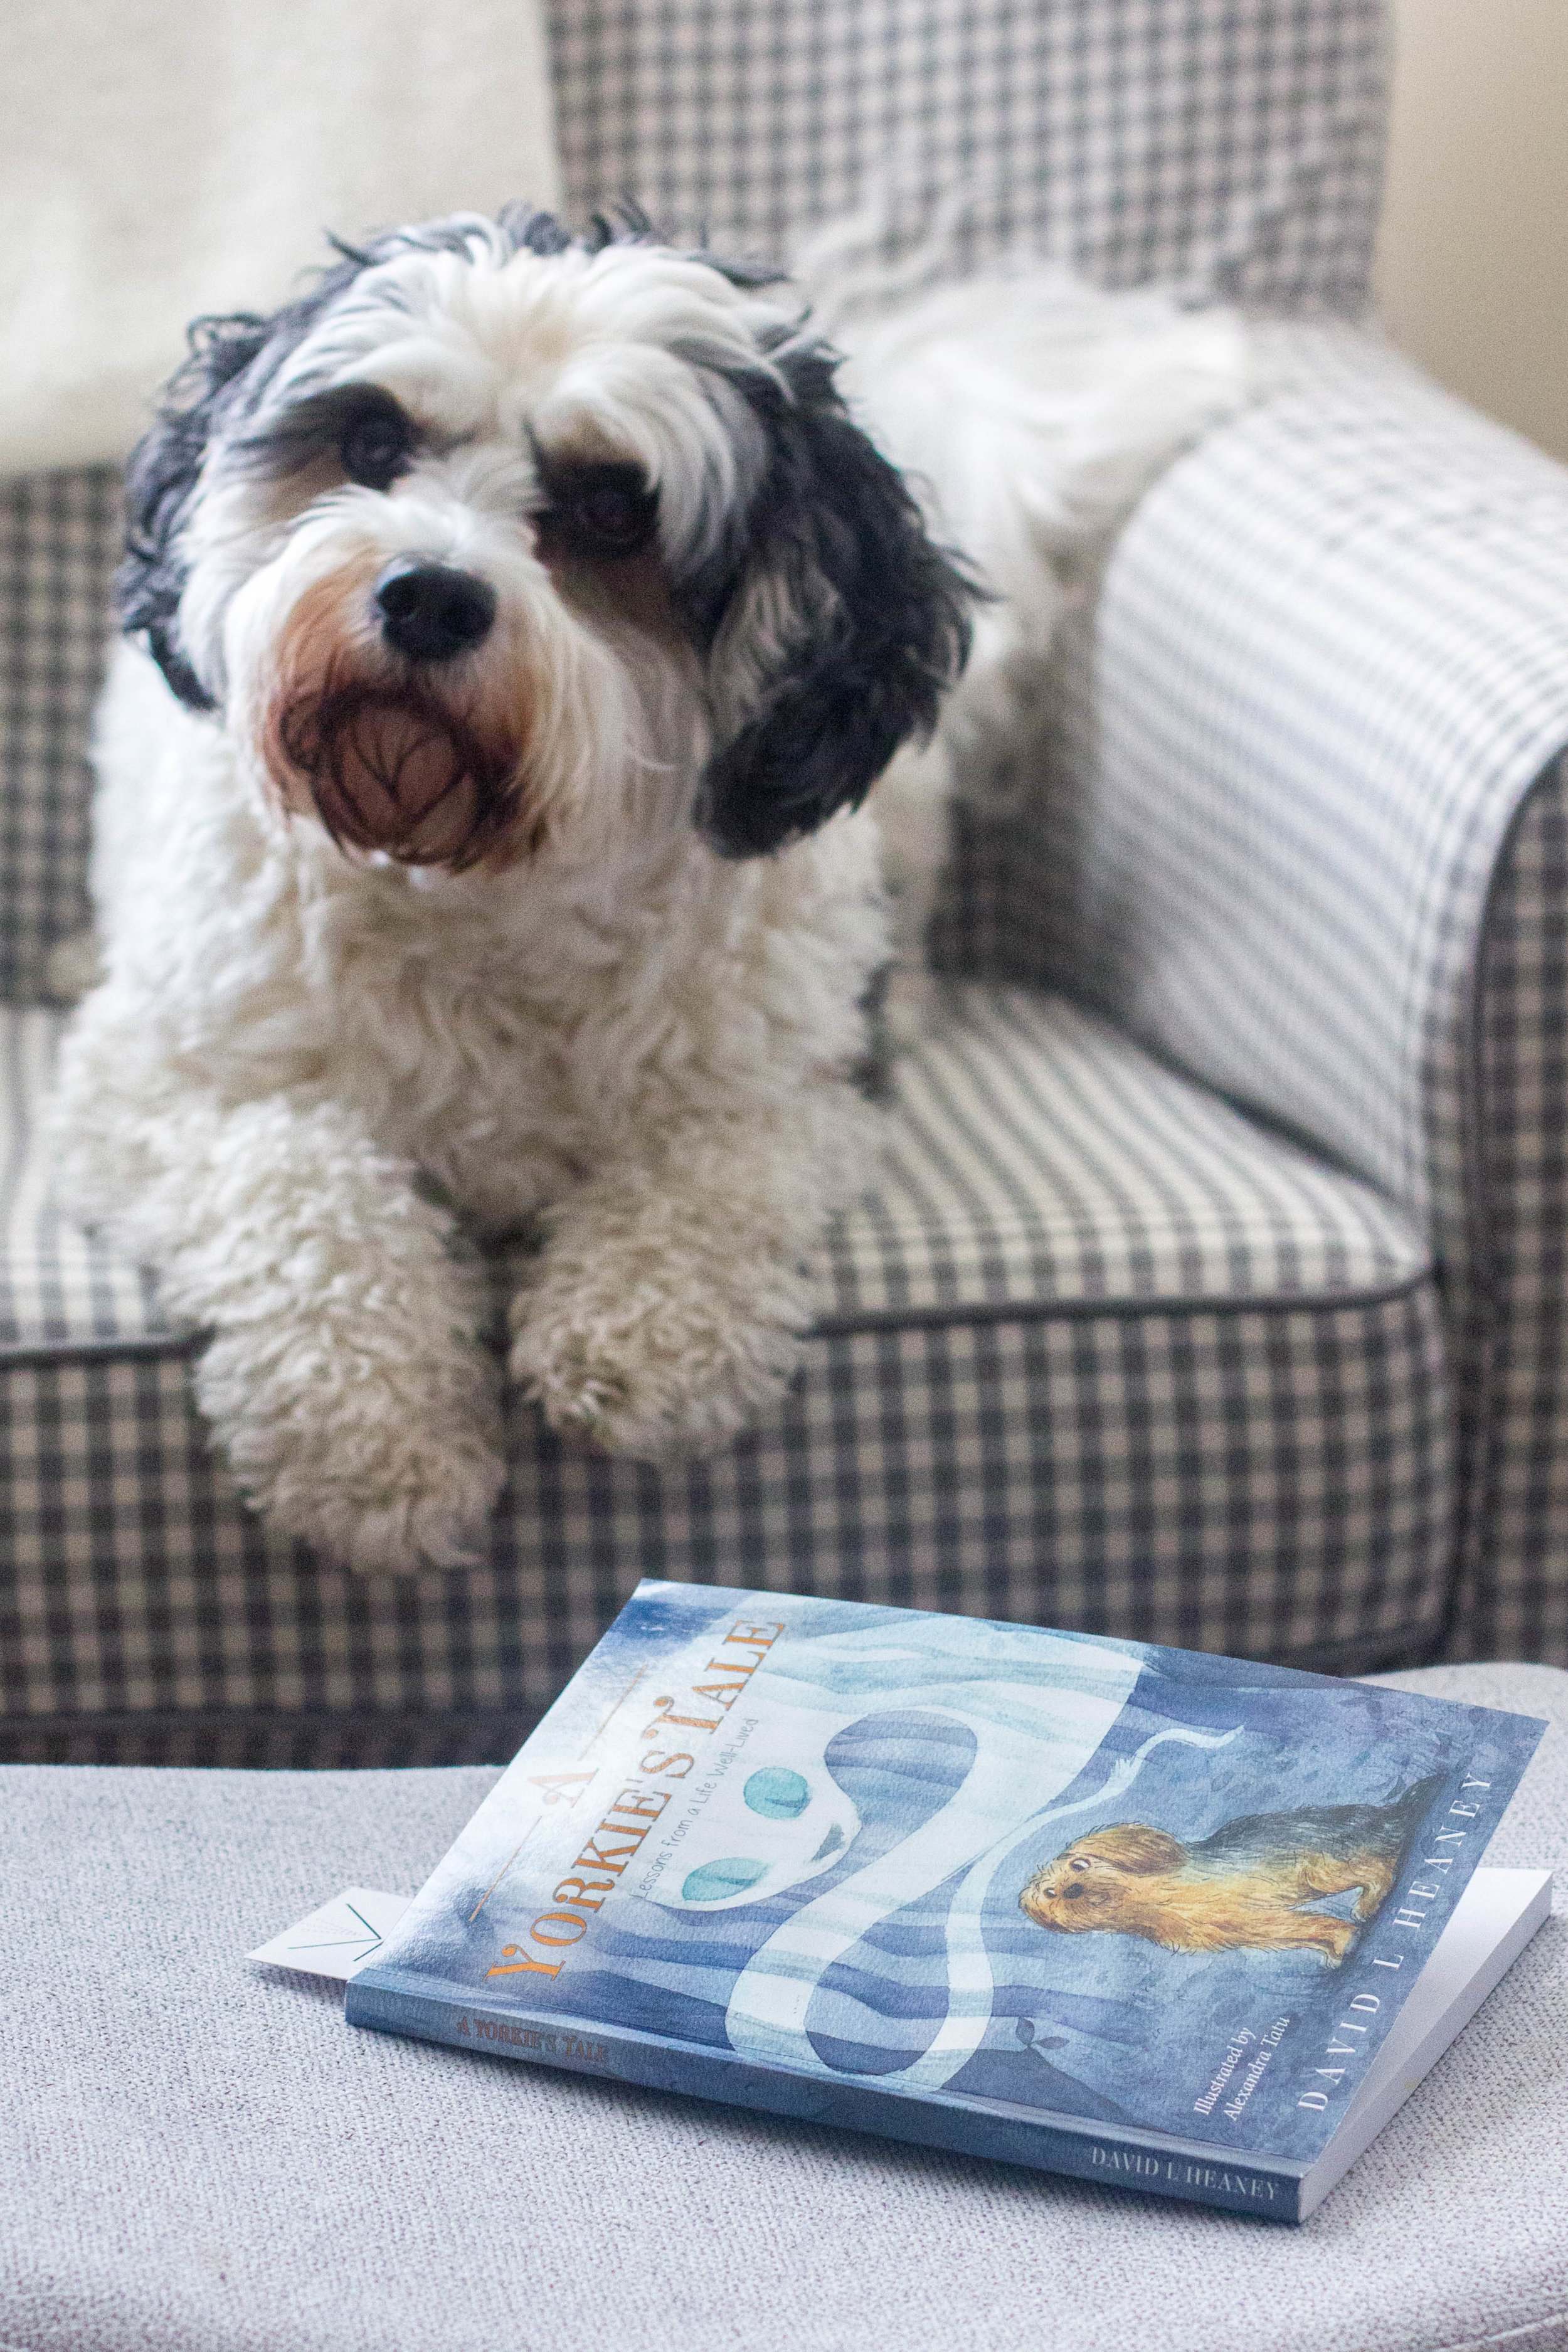 Reading A Yorkie's Tale by David Heaney at home with Huxley